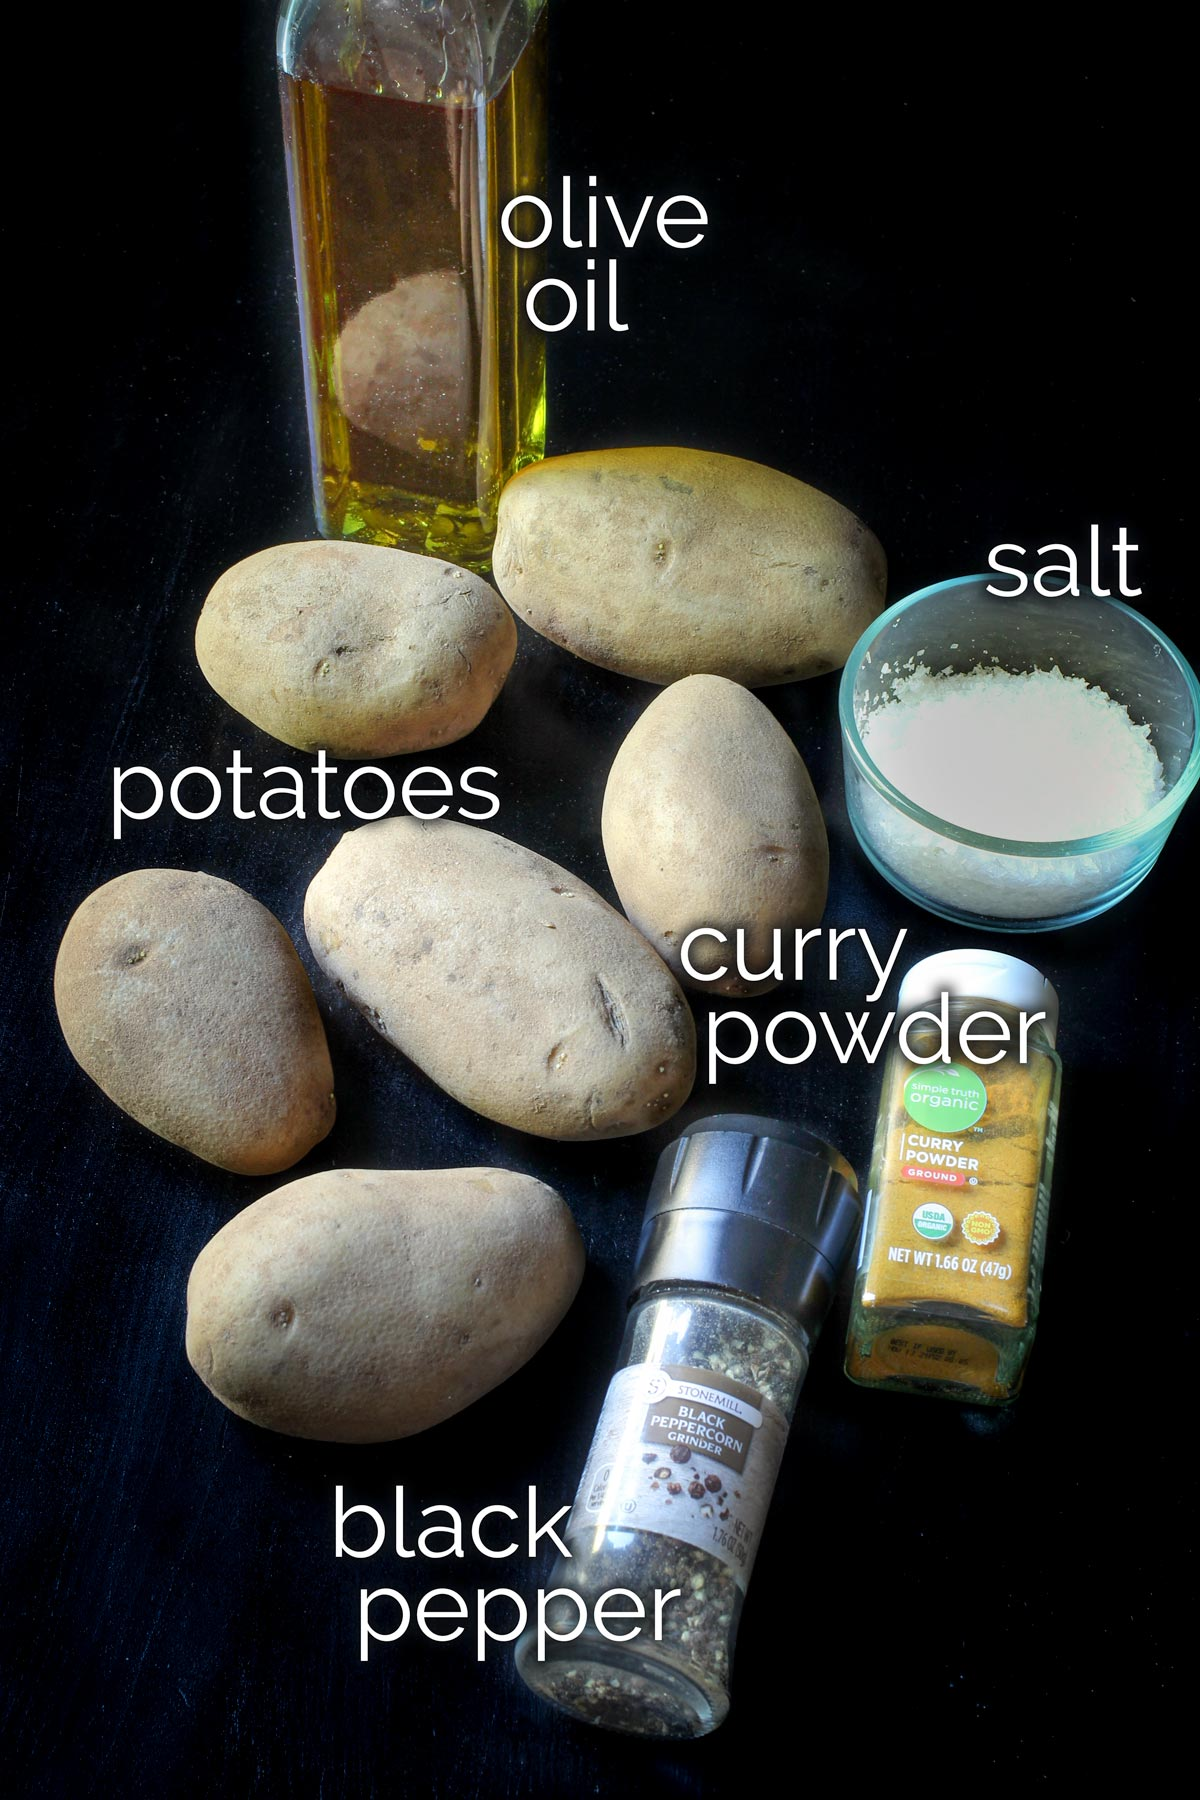 ingredients for curried potatoes